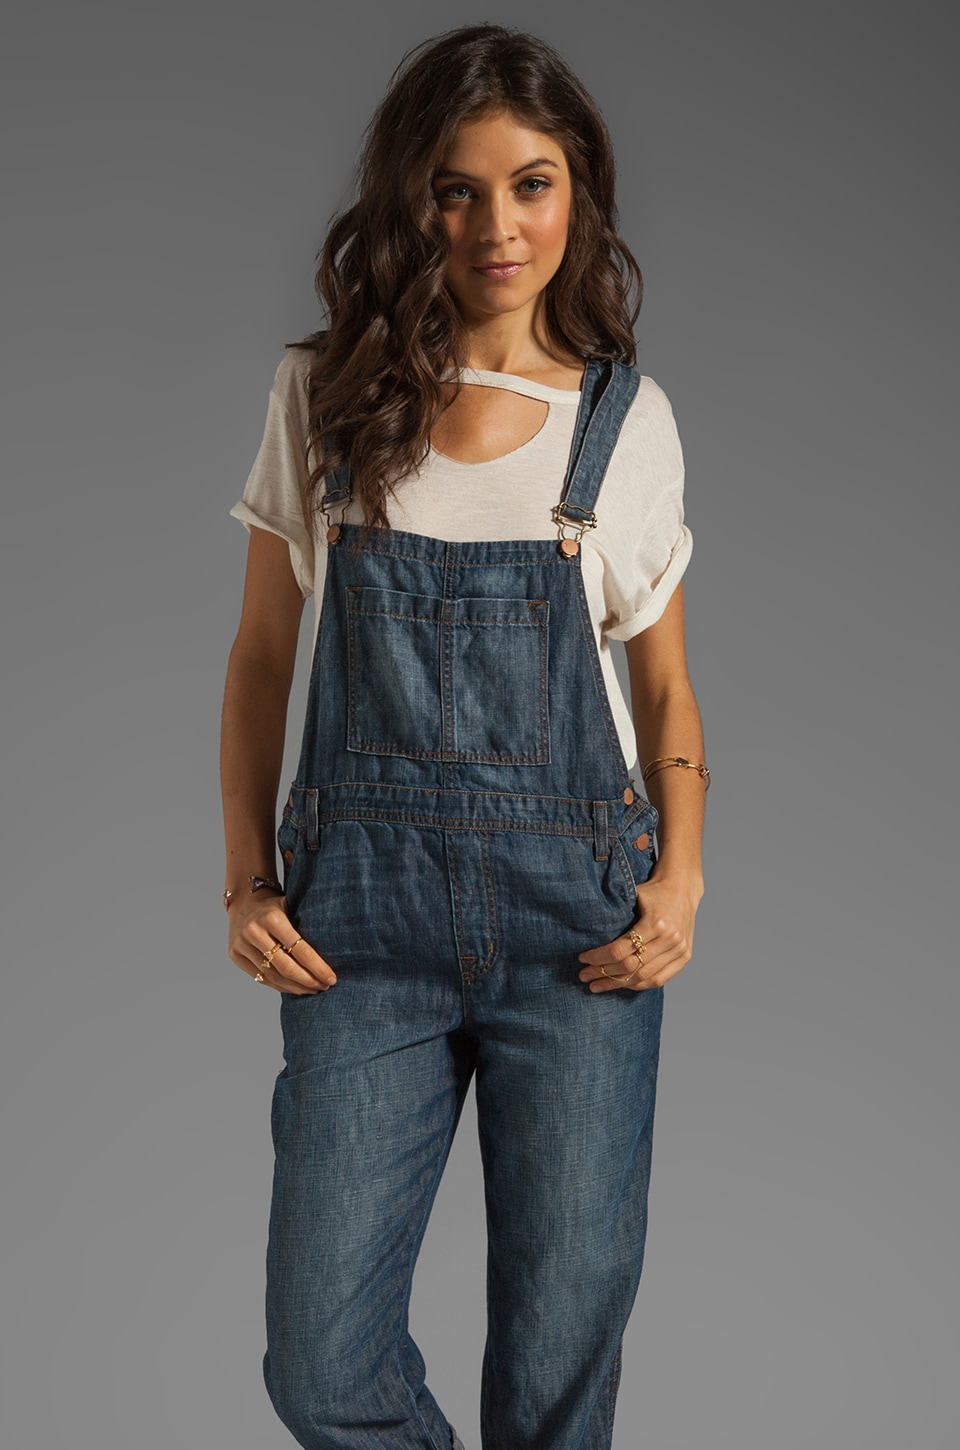 J Brand Cropped Overalls in Rivington